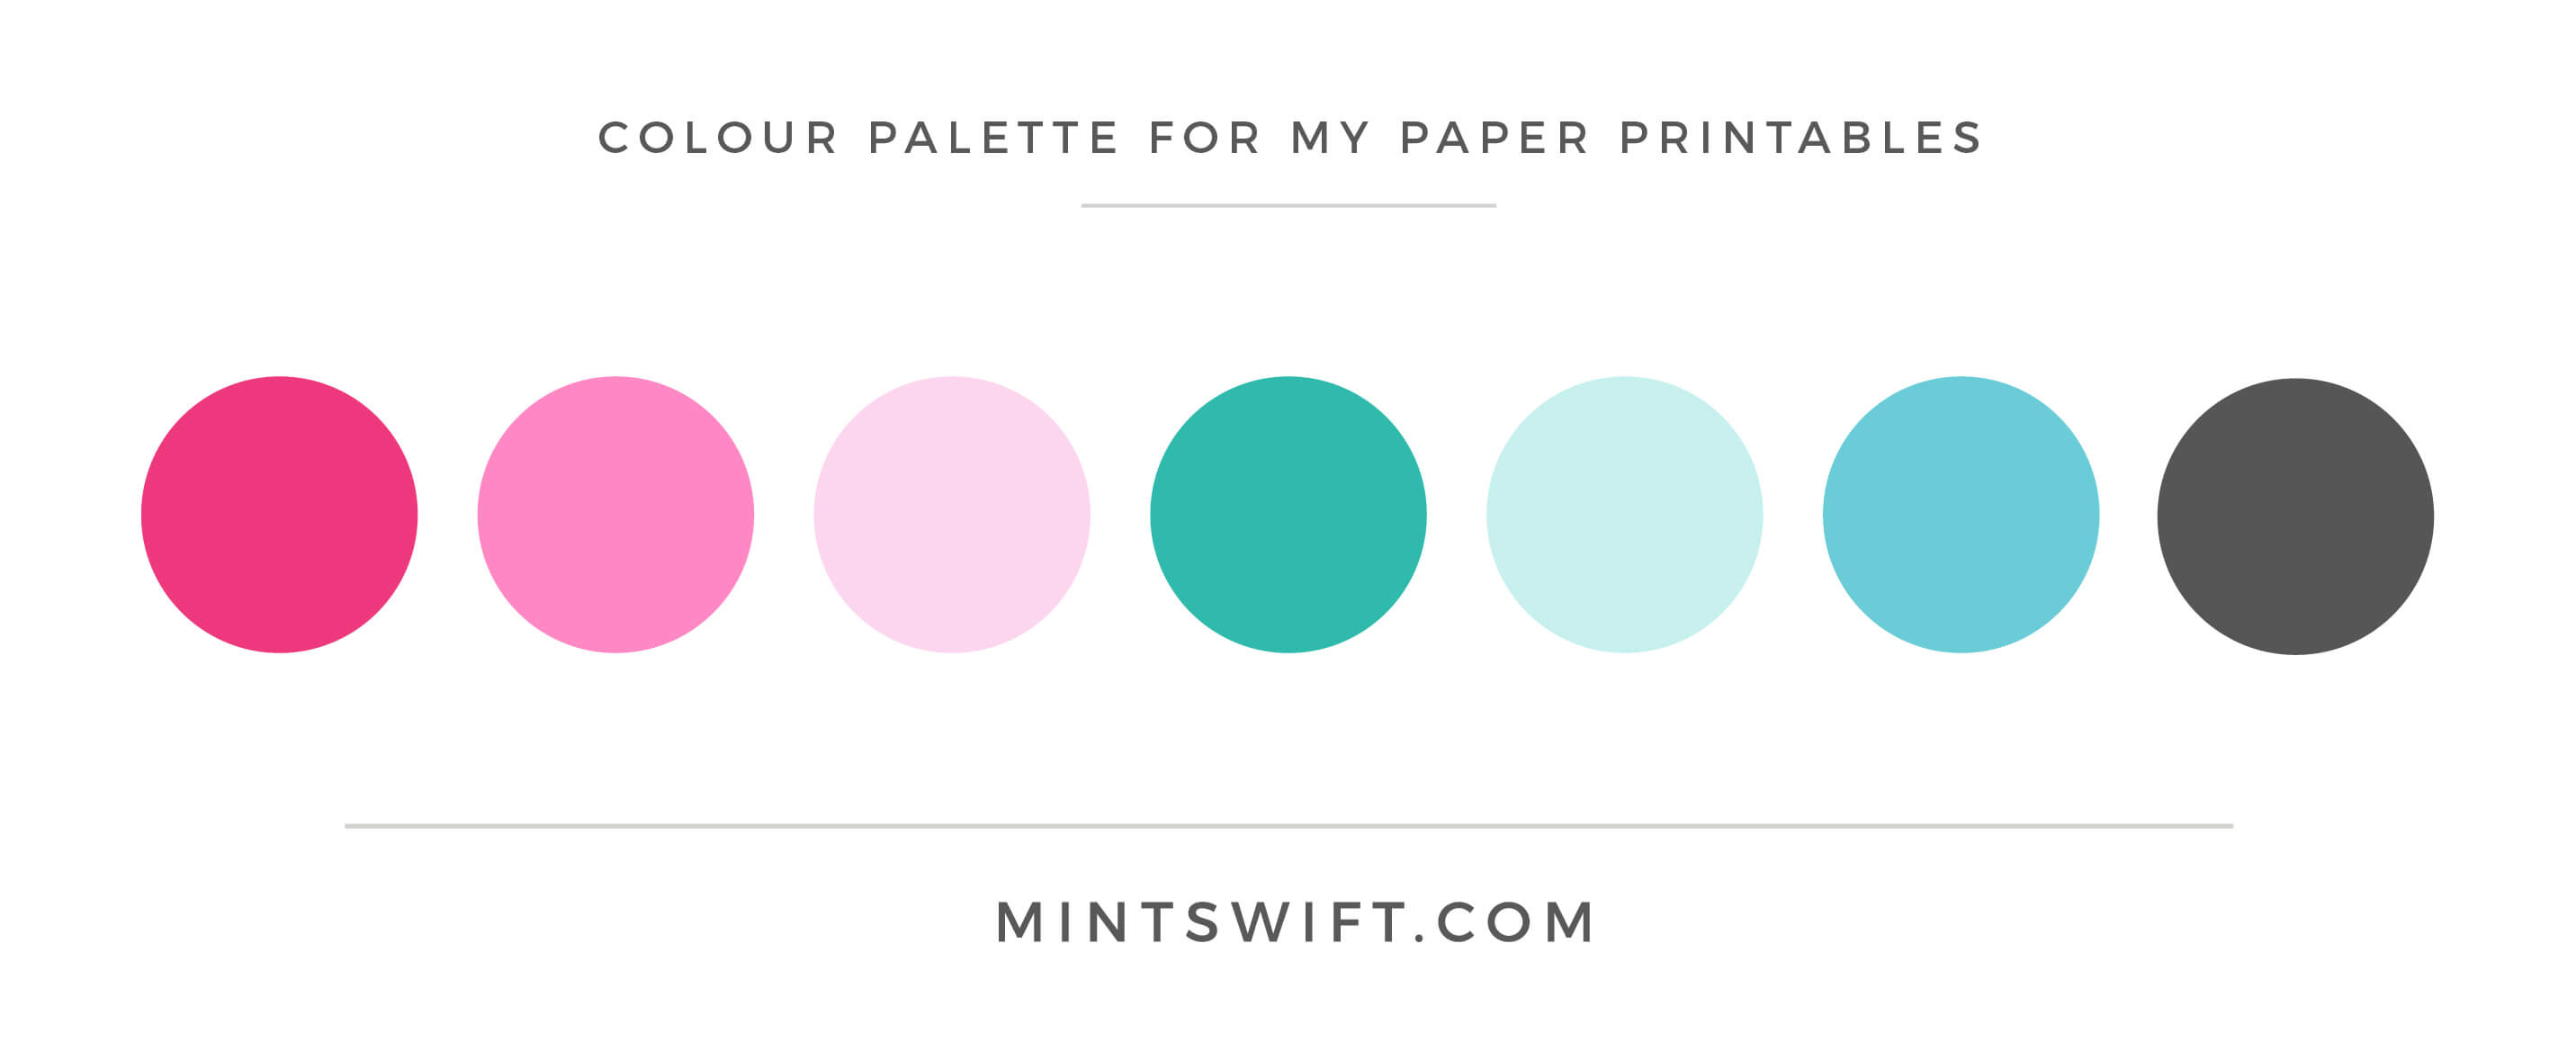 My Paper Printables - Colour Palette - Brand Design - MintSwift